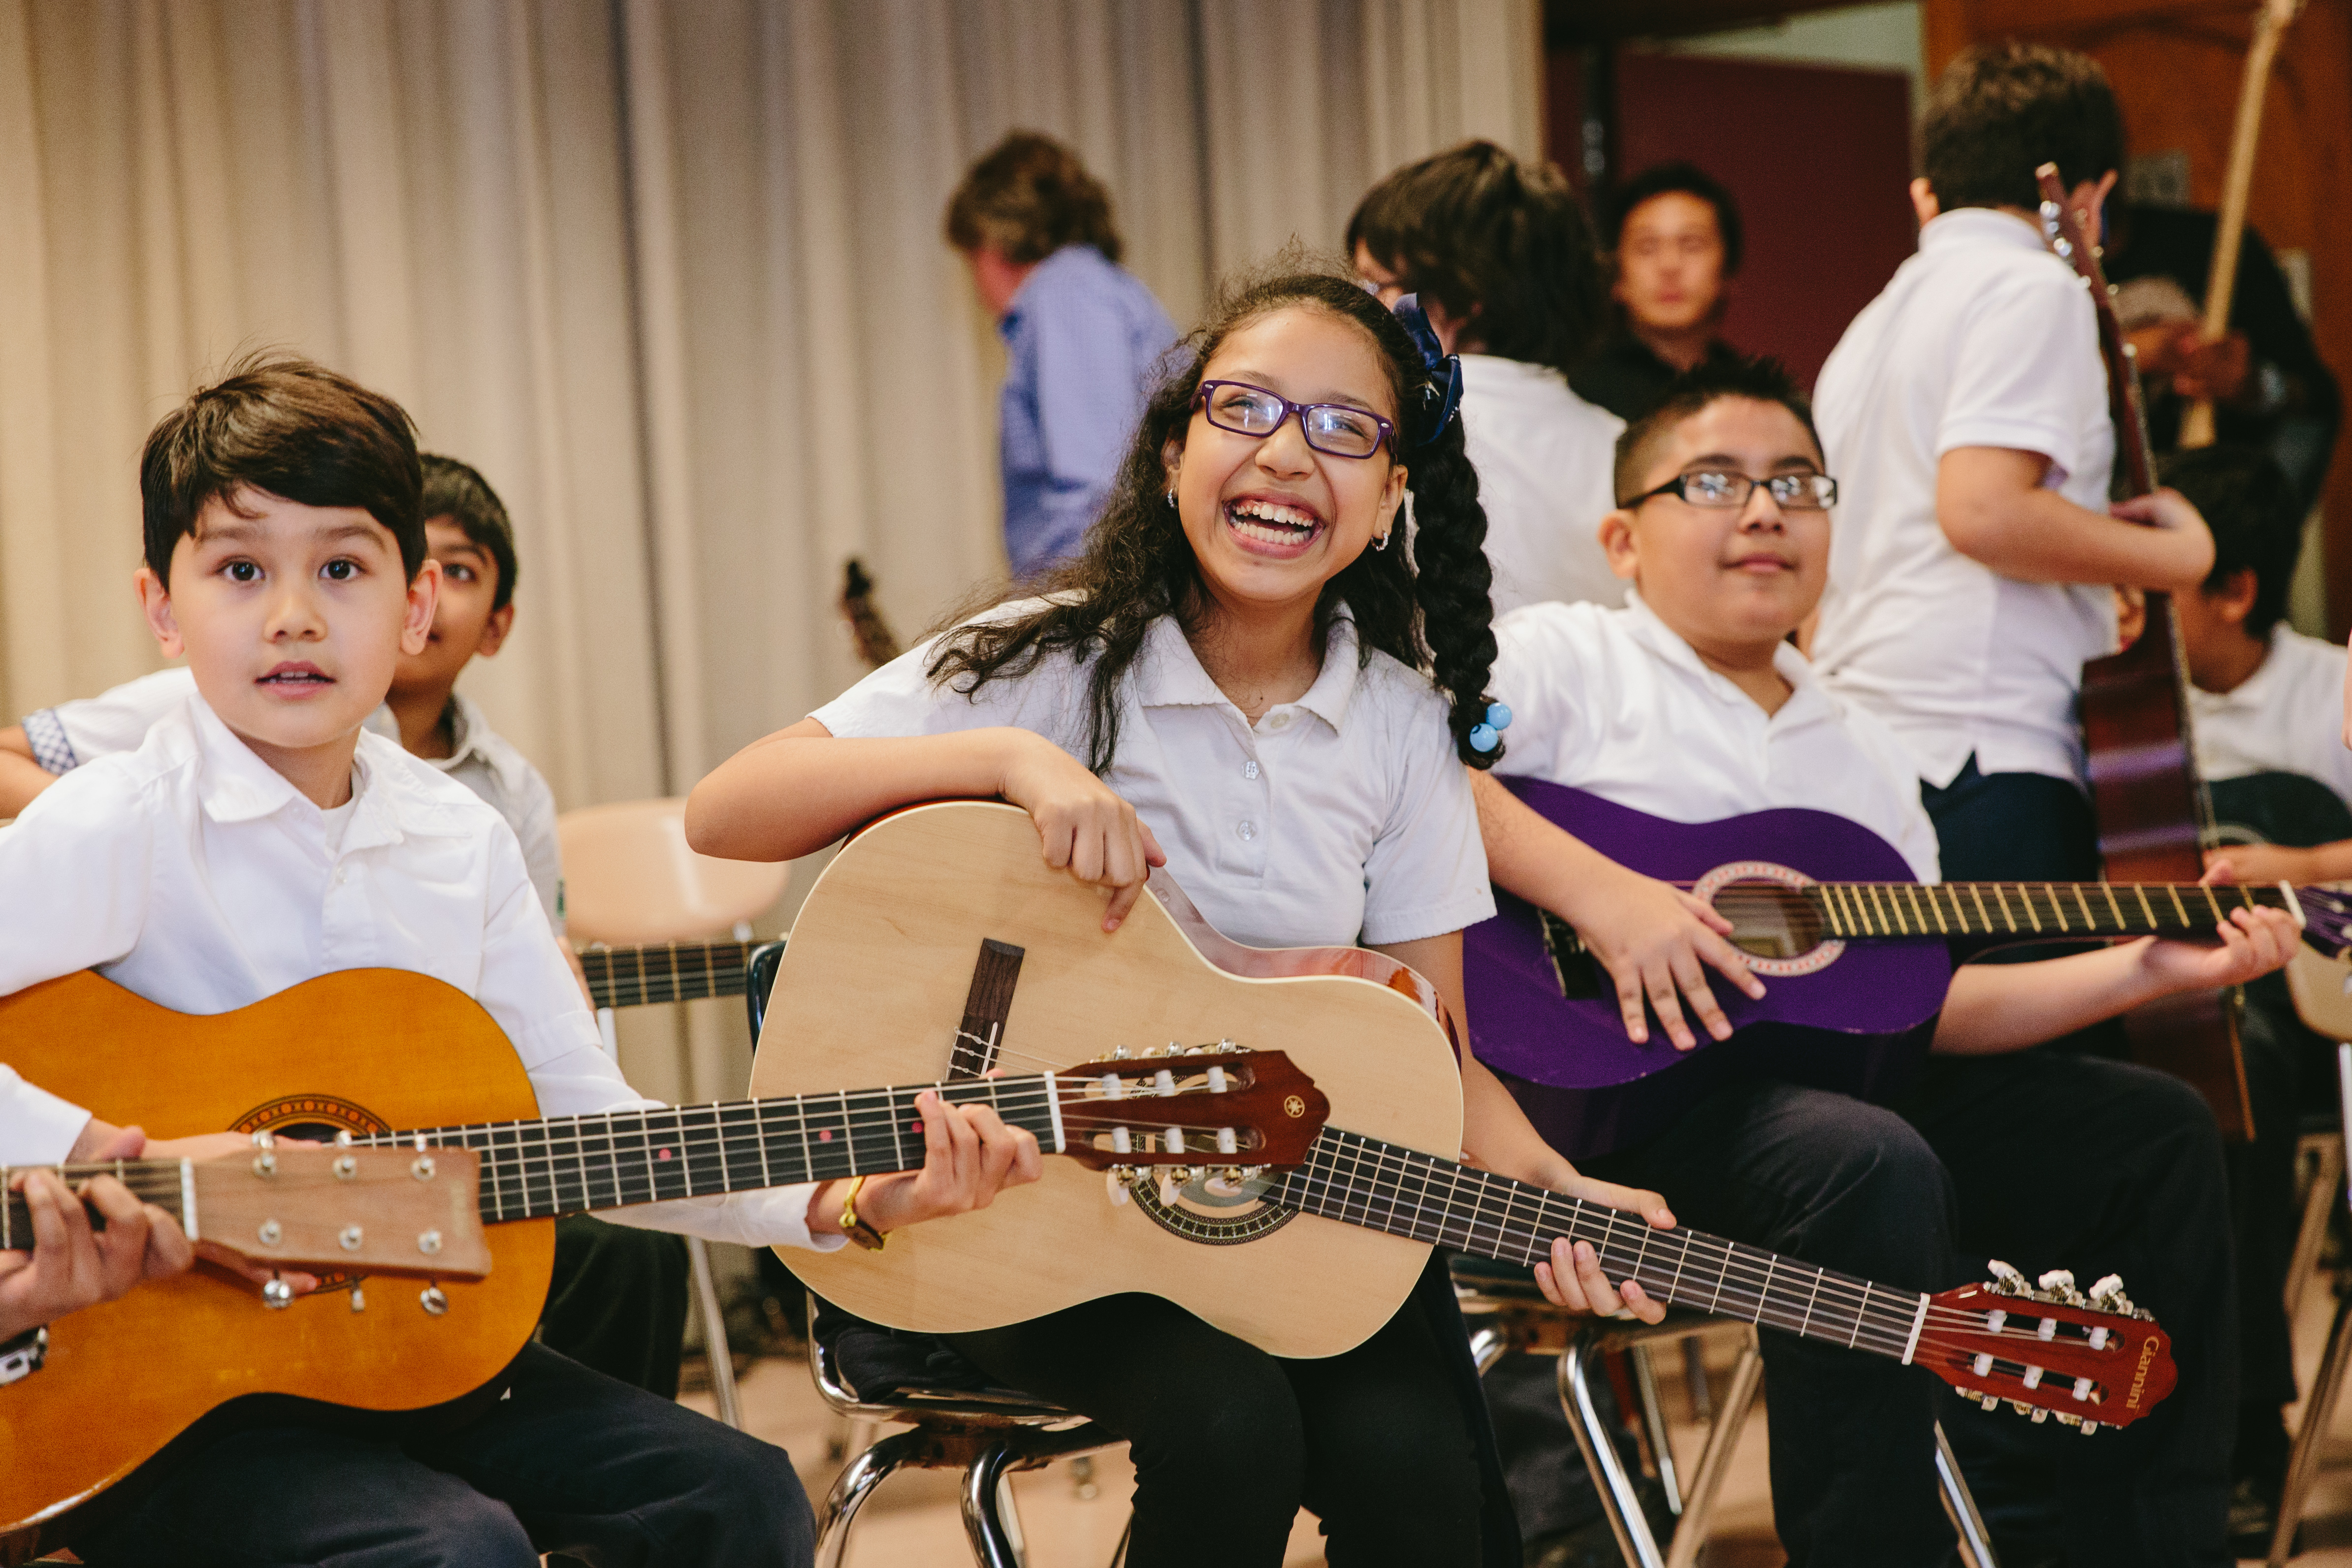 Smiling Little Kids Rock student with guitar